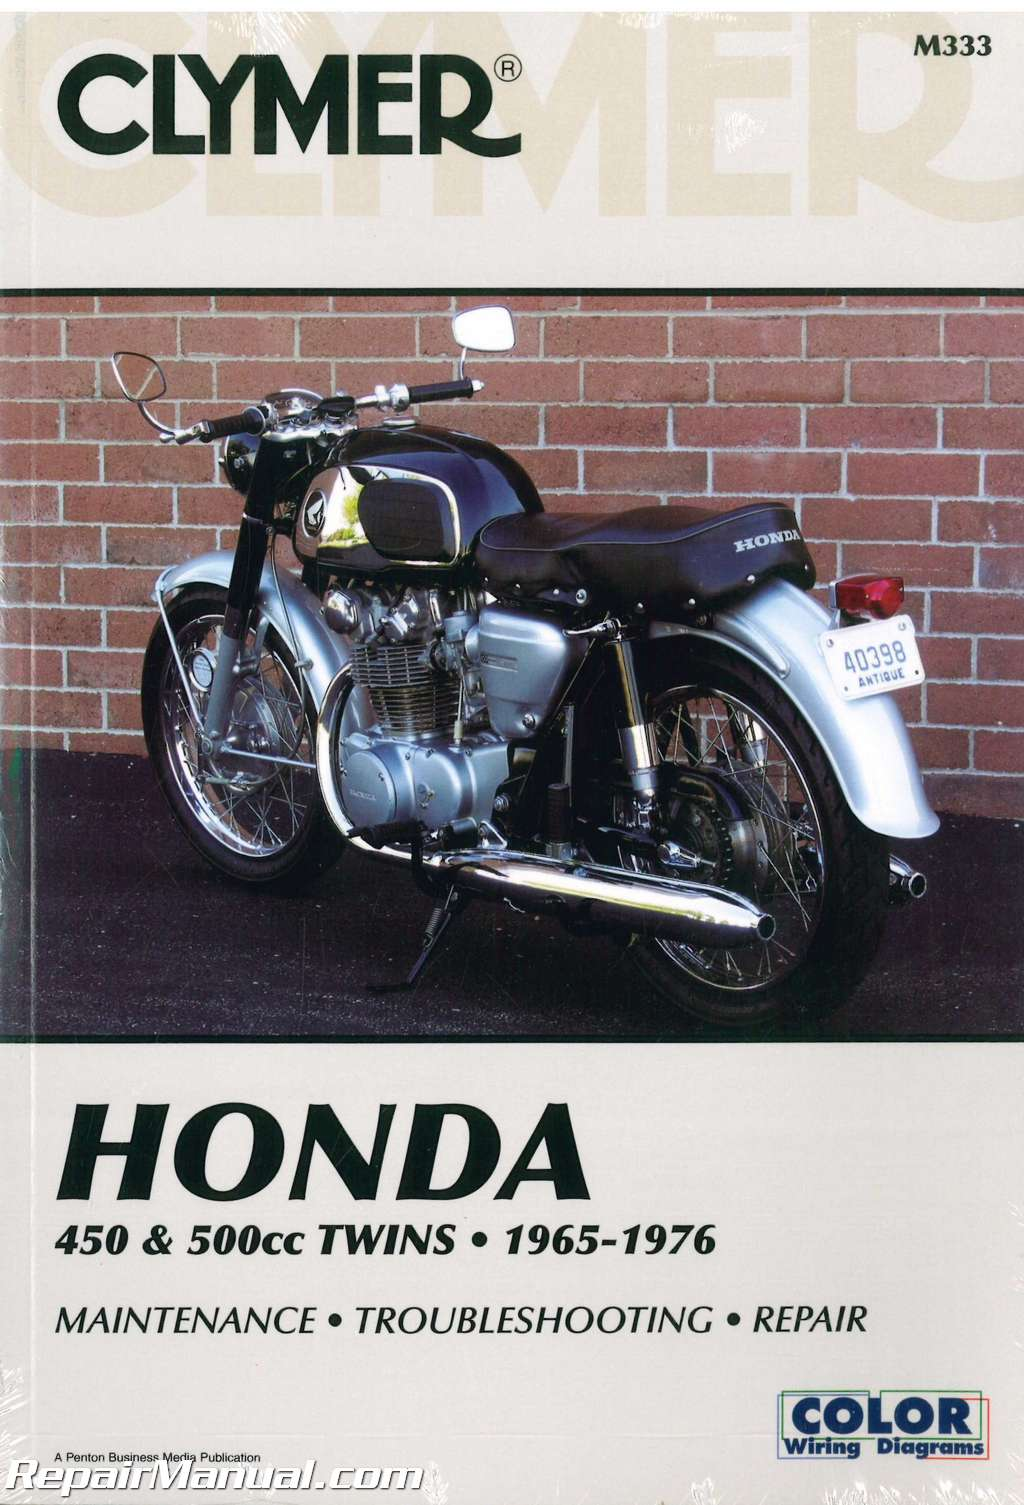 Clymer Honda 450 500cc Twins 1965 1976 Motorcycle Repair Manual